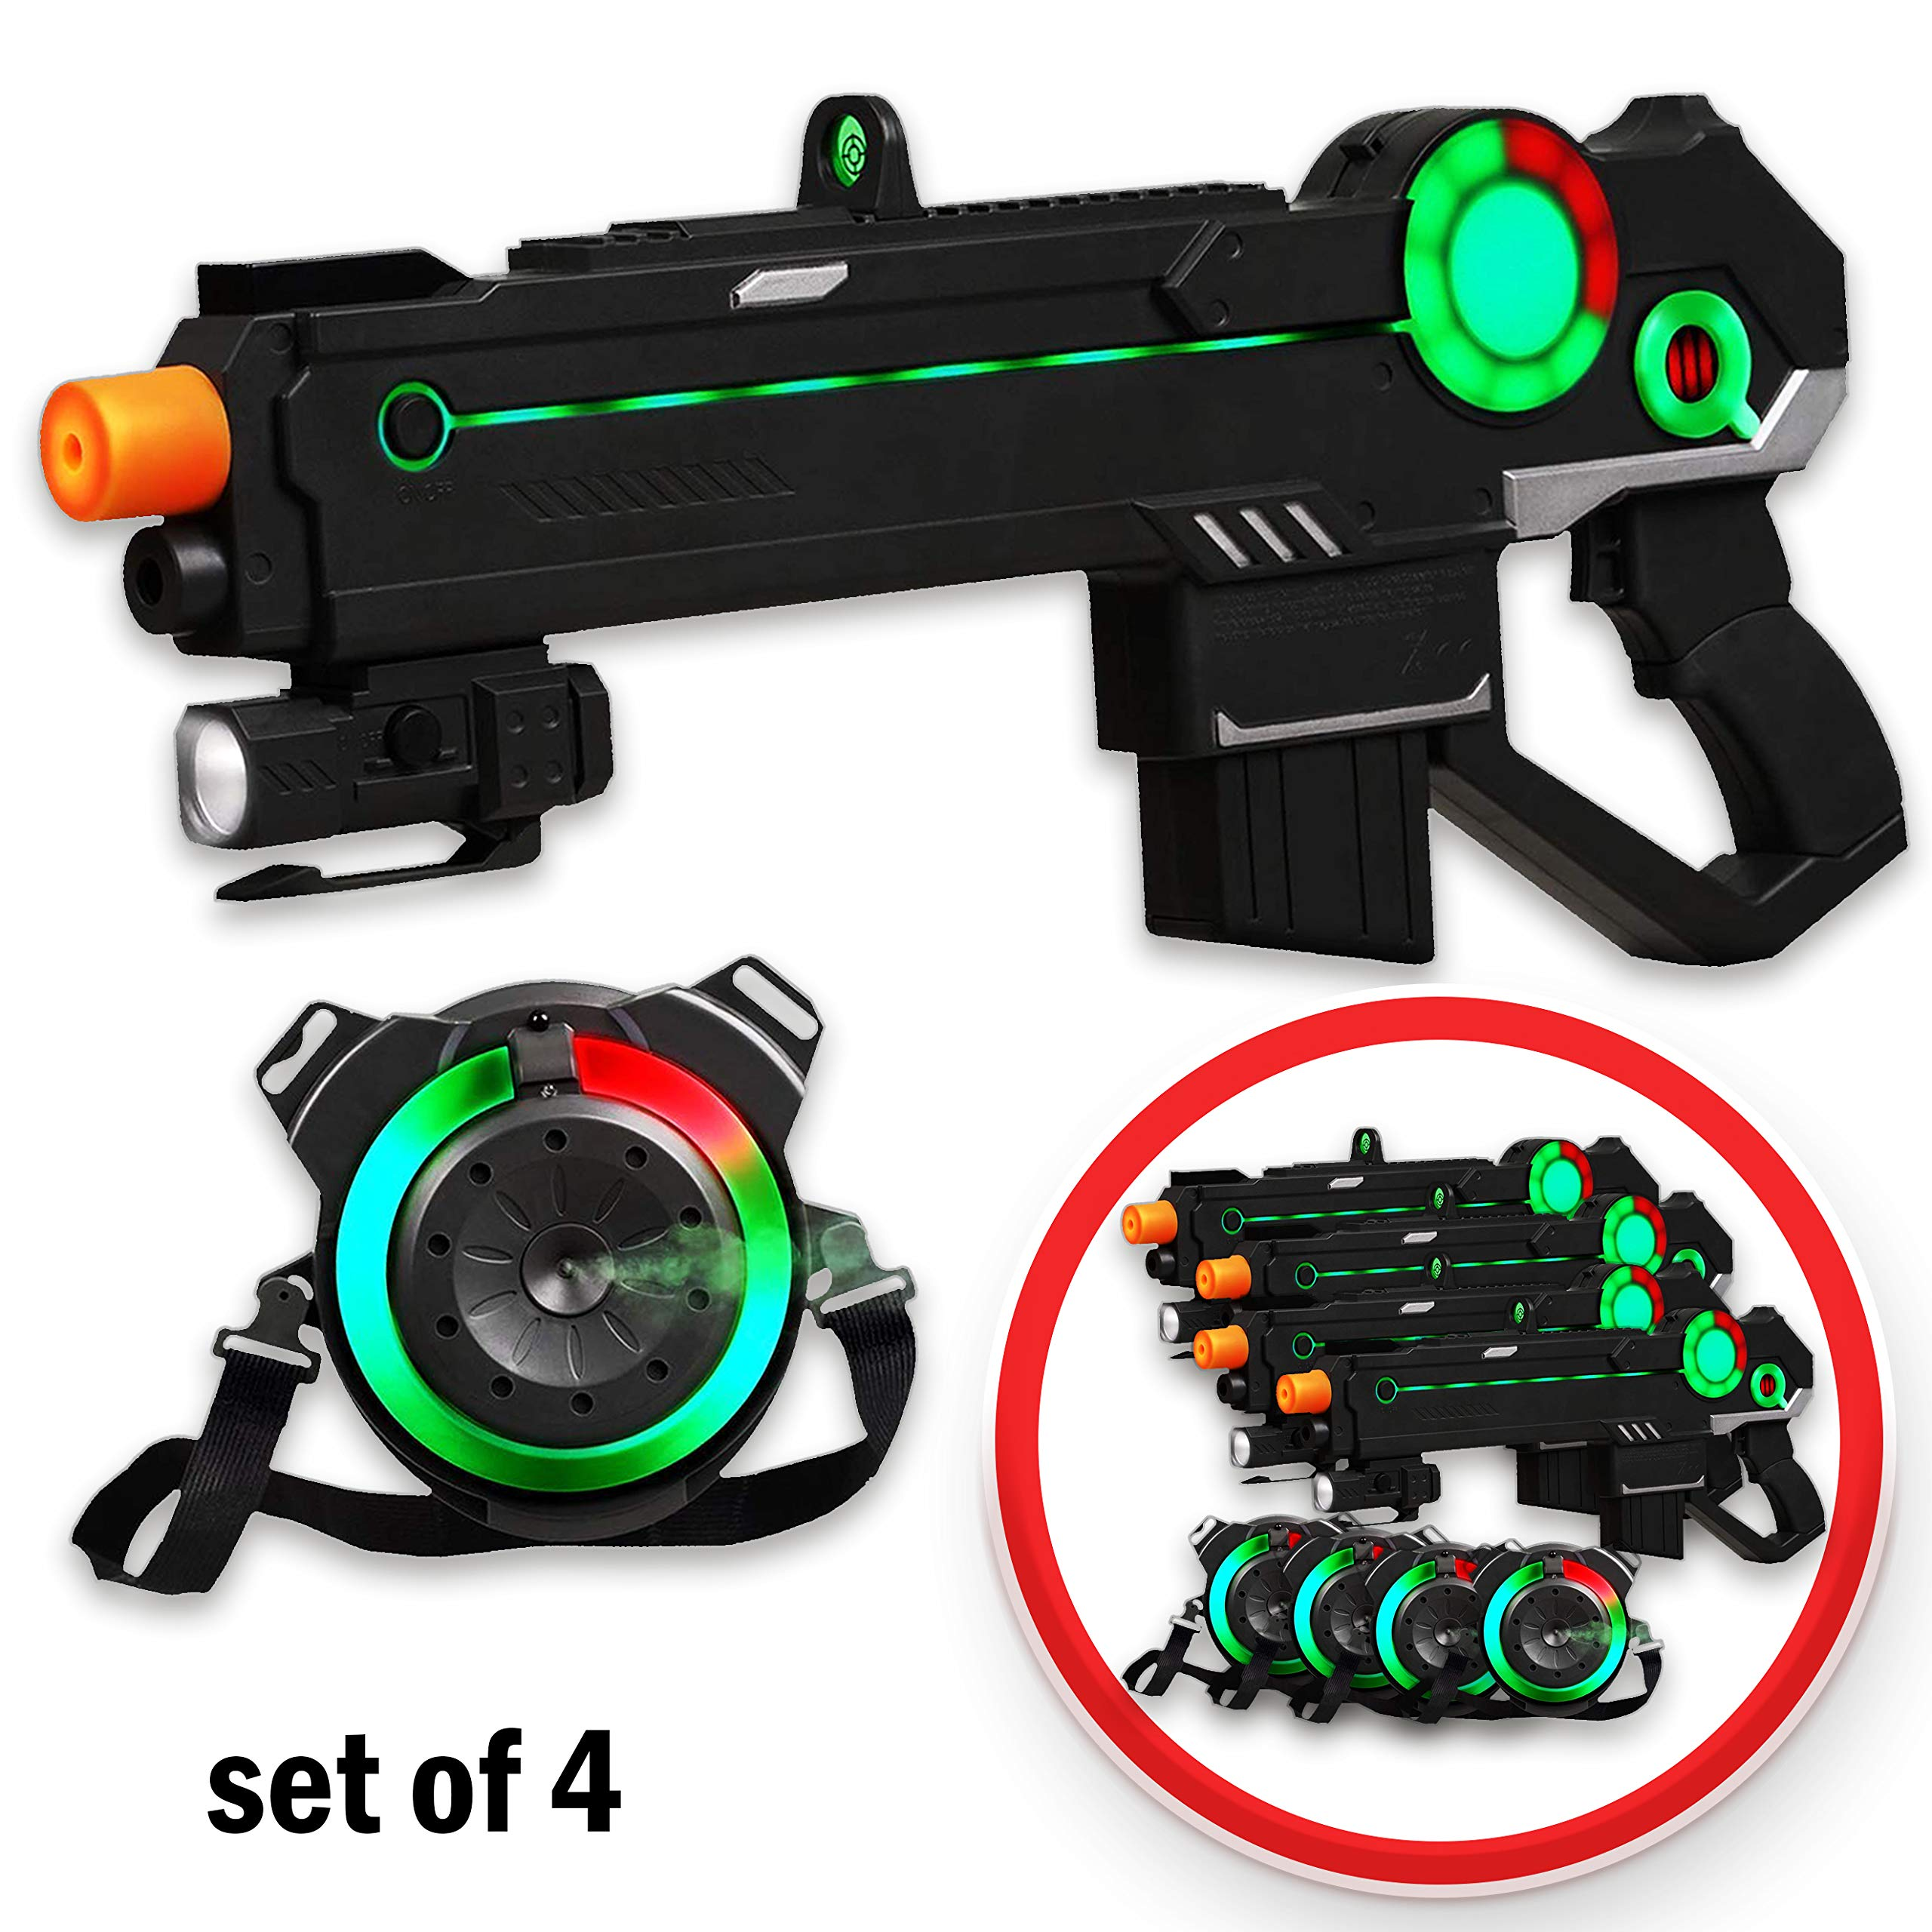 Ranger 1 Laser Tag Reality Gaming Kit with 4 Guns, 4 Vests, 225ft Shooting Range, Unique LED Heads-Up Display, World-First 100% Gun/Vest Synchronization, Smoke-Like Water Vapor Emitter, Built-To-Last- by Strike Pros